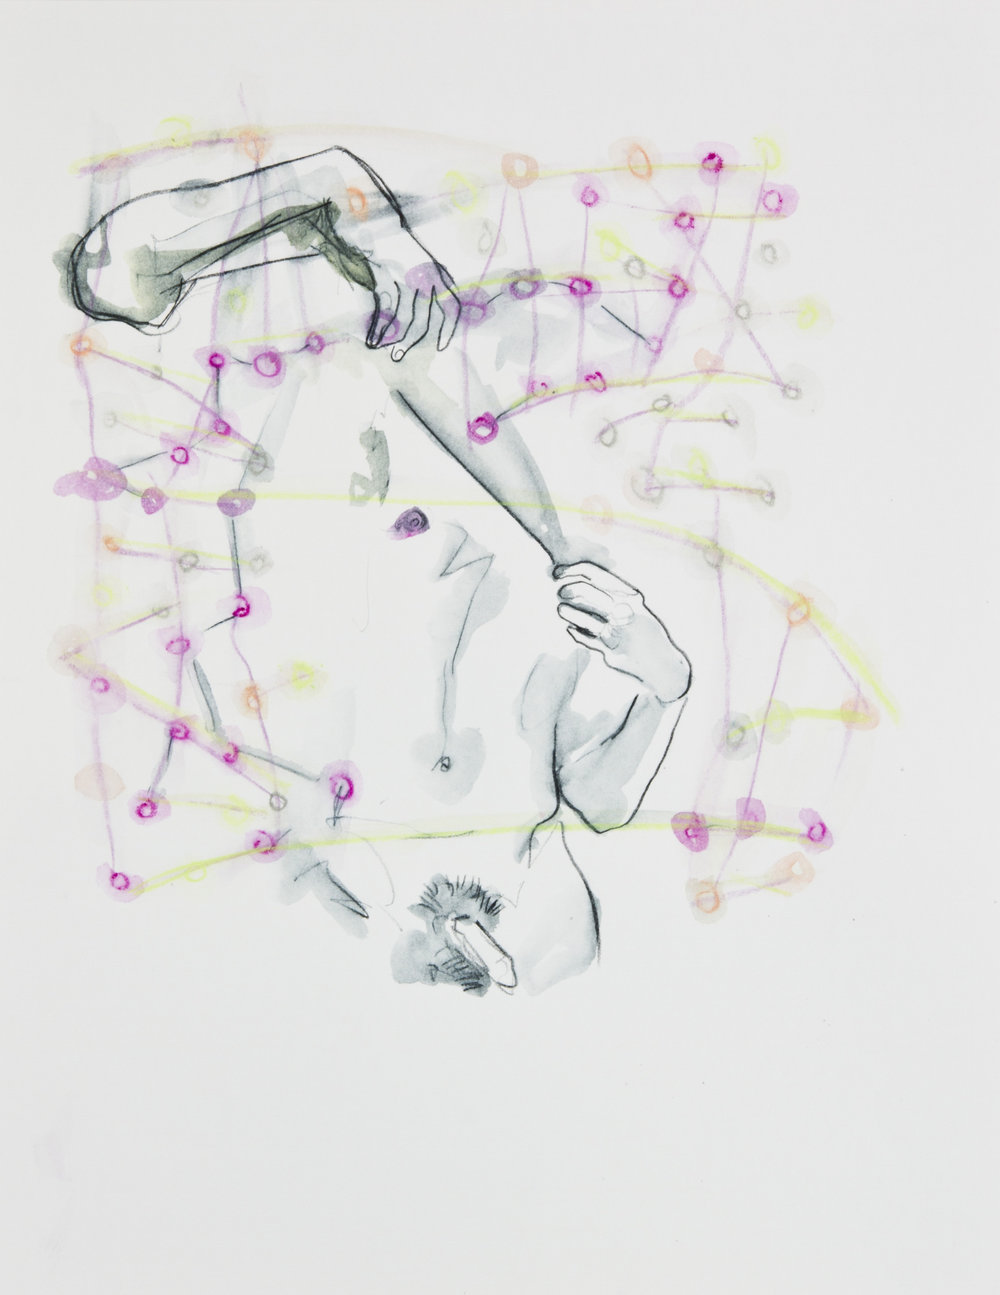 Cosmic Confetti, 2013, graphite and watercolor pencil on paper, 11x14 inches